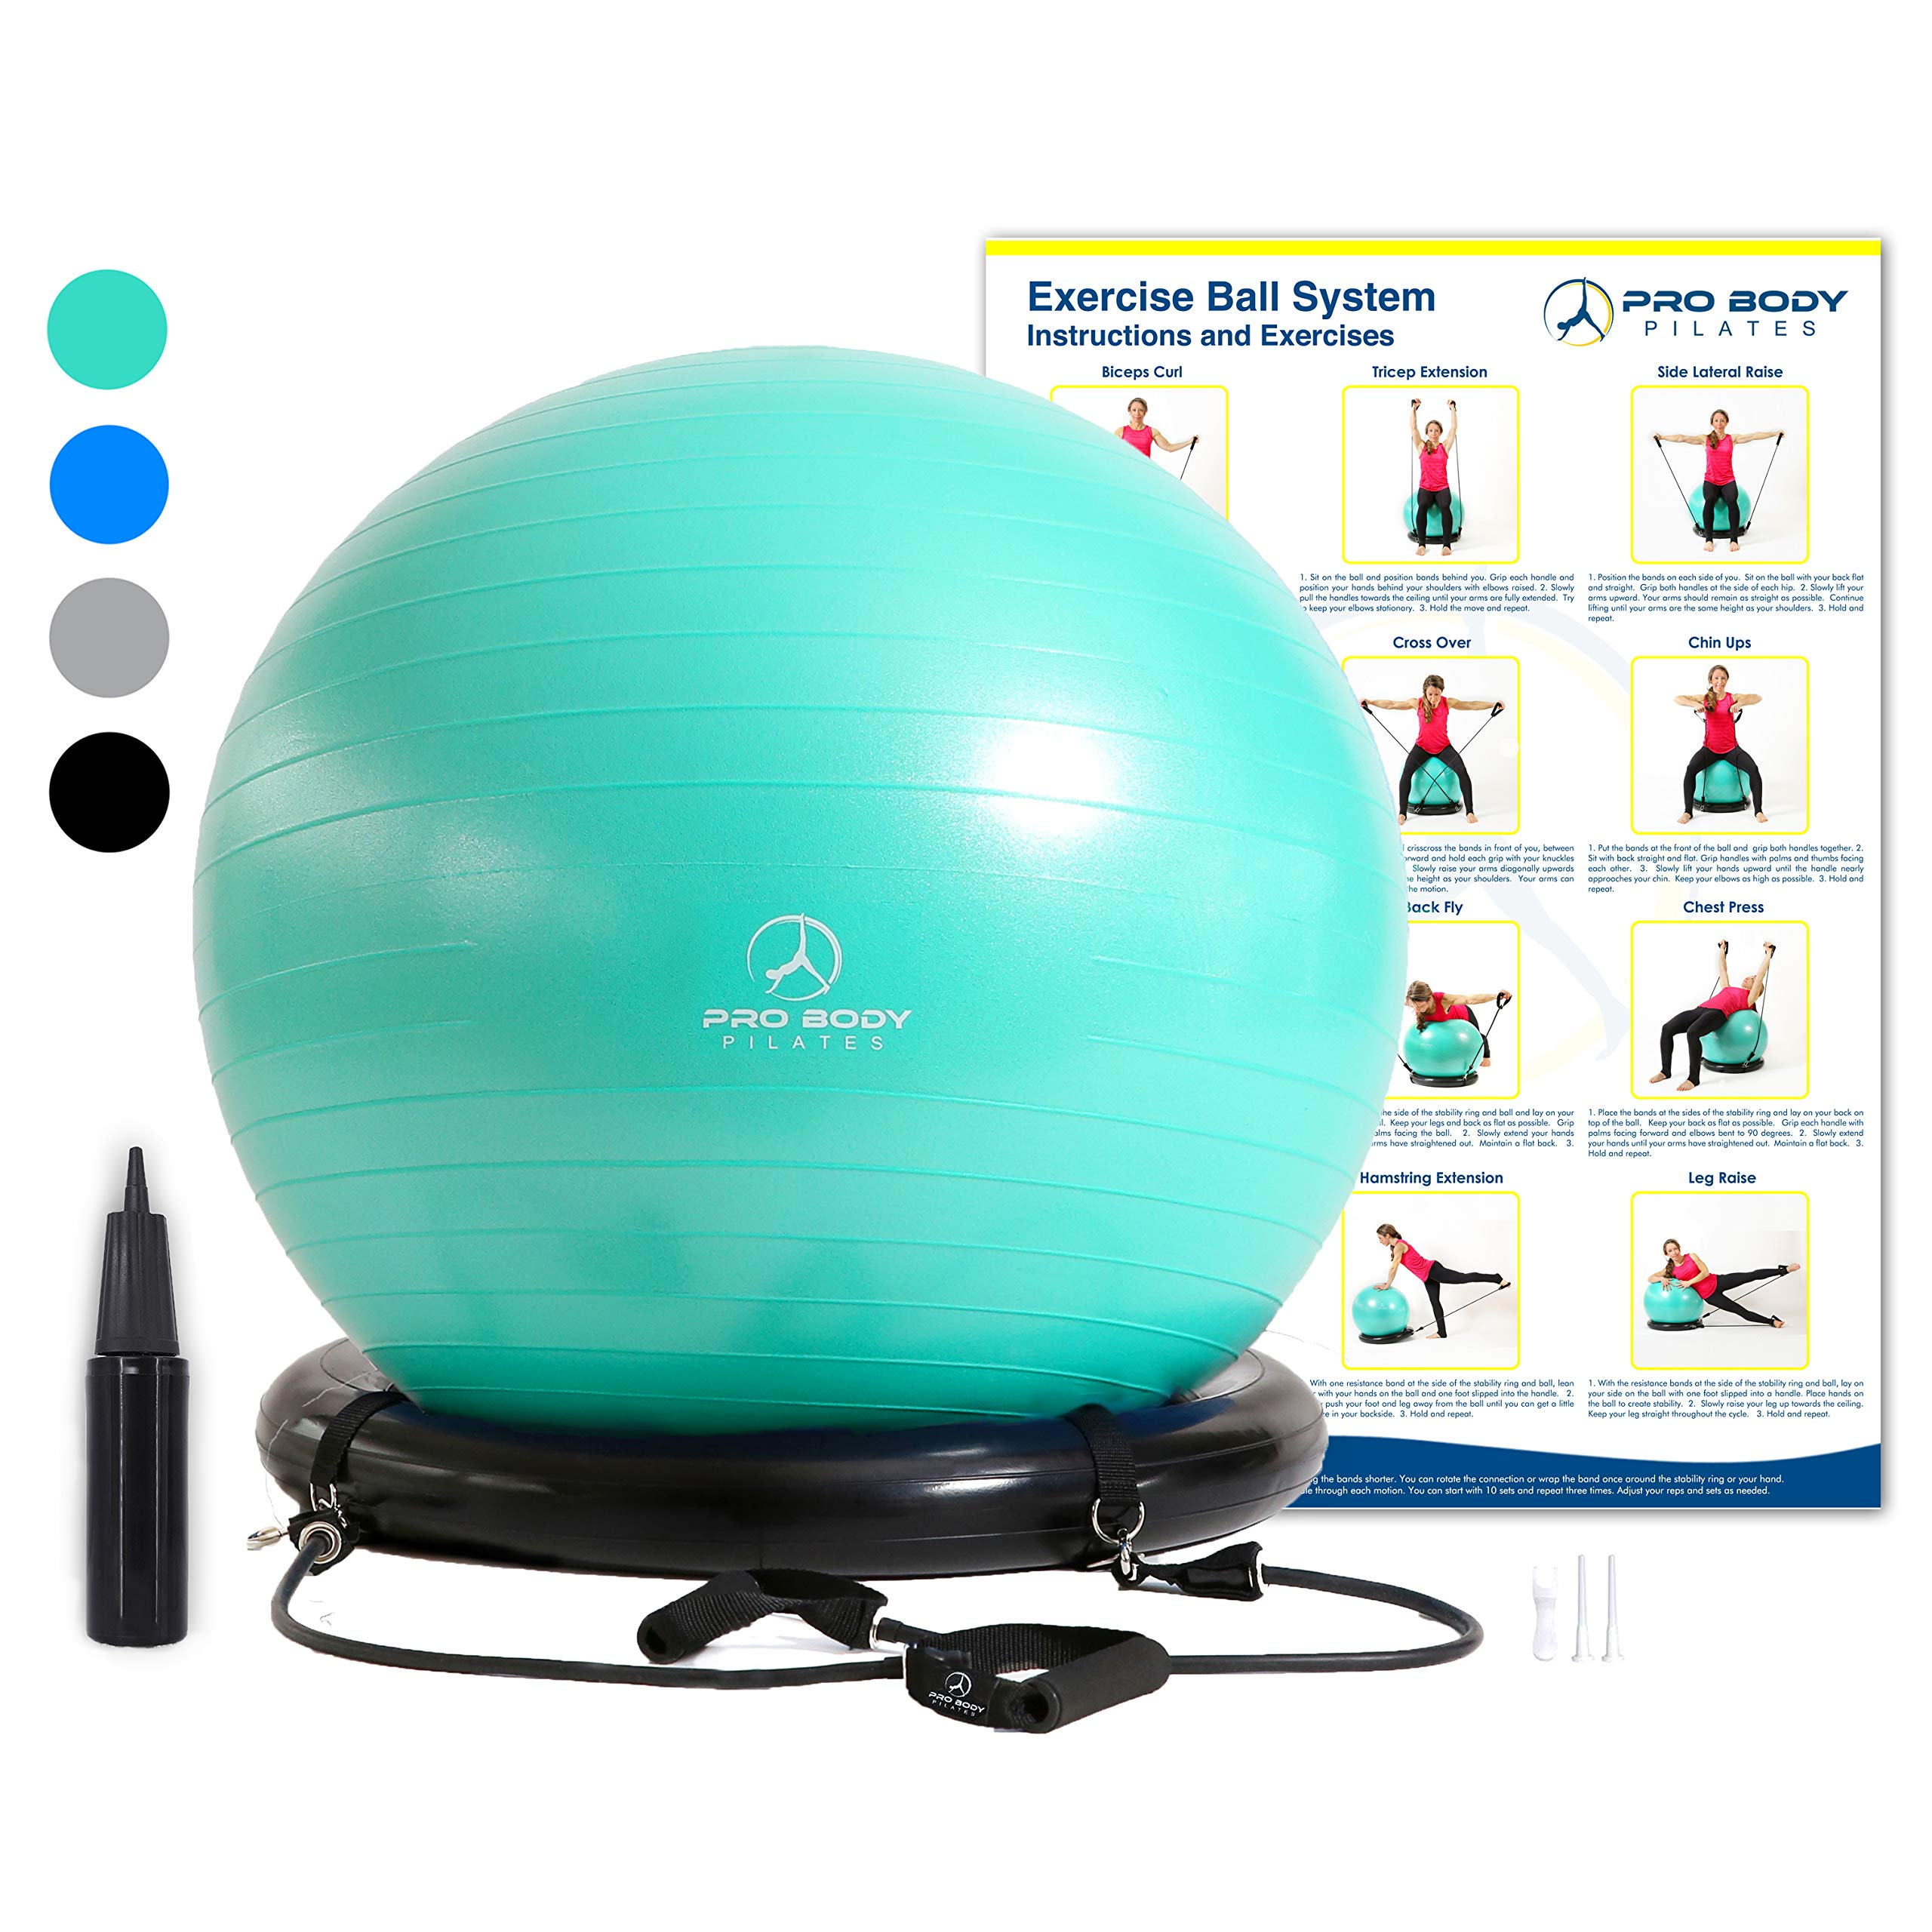 Exercise Ball Chair System - Yoga and Pilates 65 cm Ball with Stability Base and Workout Resistance Bands for Gym, Home, or Office (Aqua, 65 cm) by ProBody Pilates